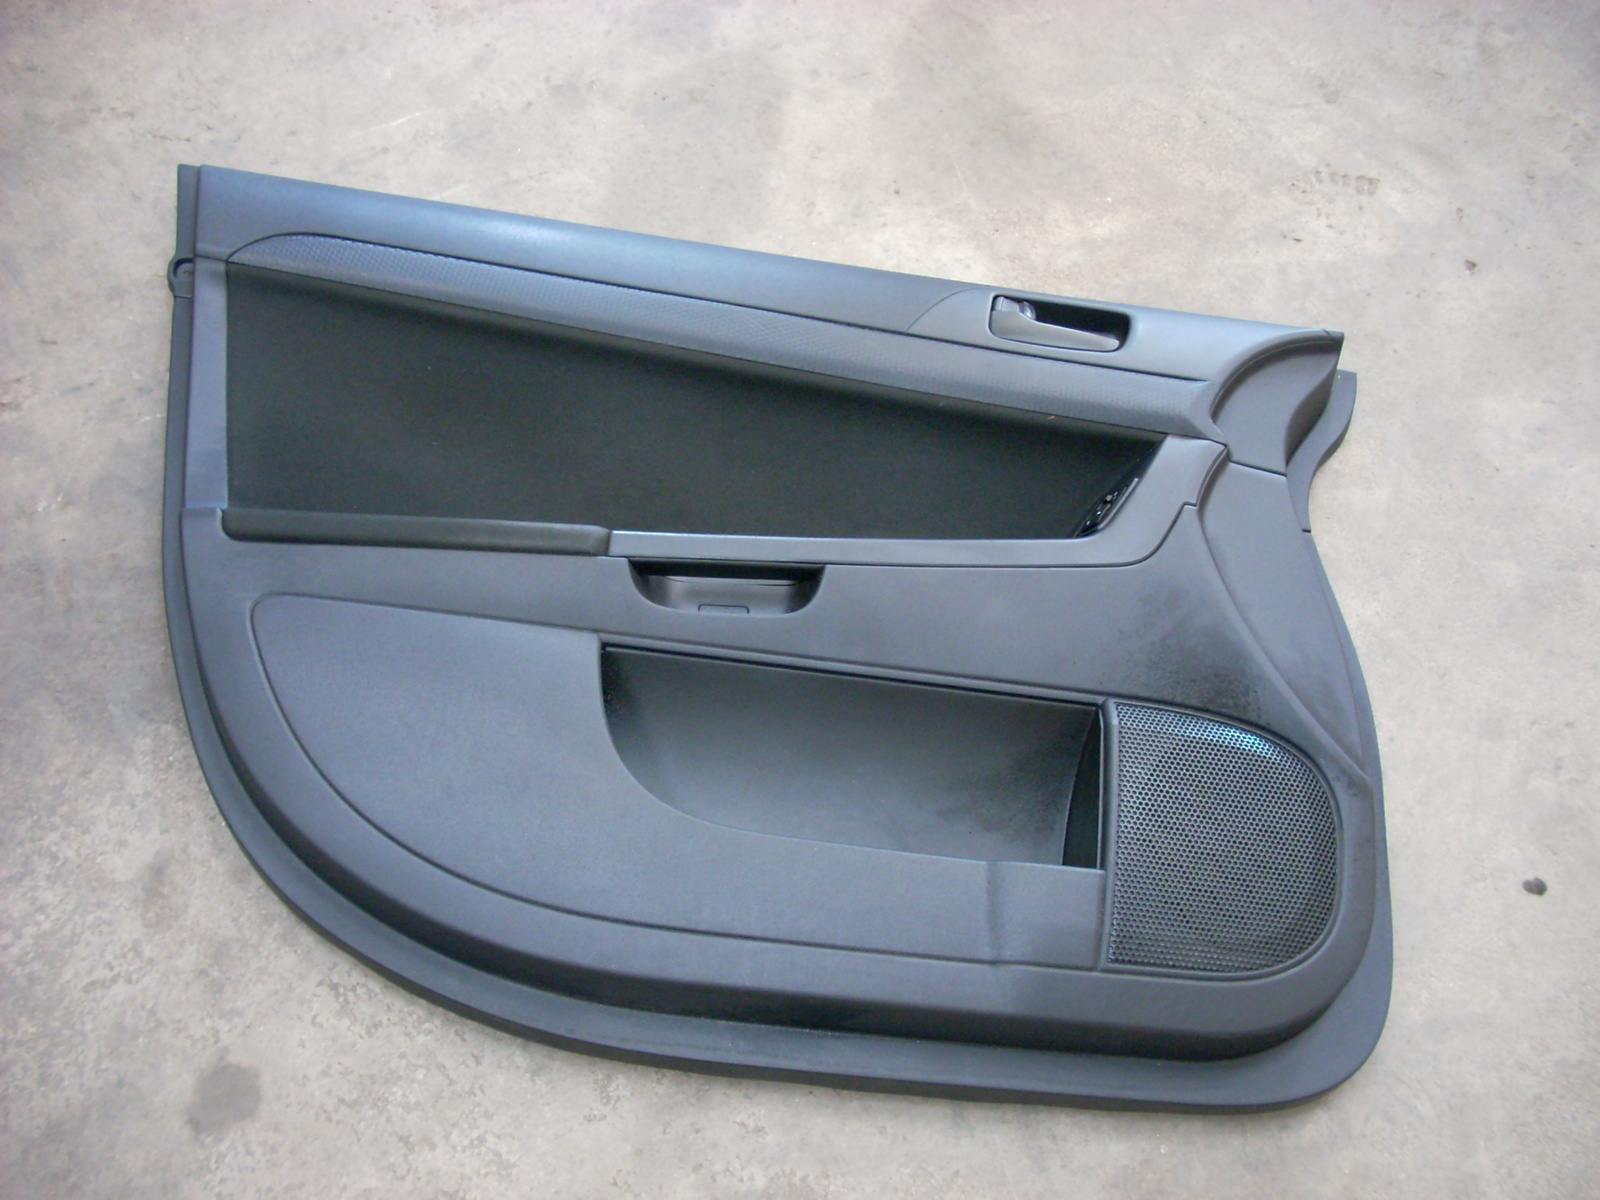 2010 MITSUBISHI LANCER BLACK LEFT DRIVER FRONT DOOR TRIM PANEL